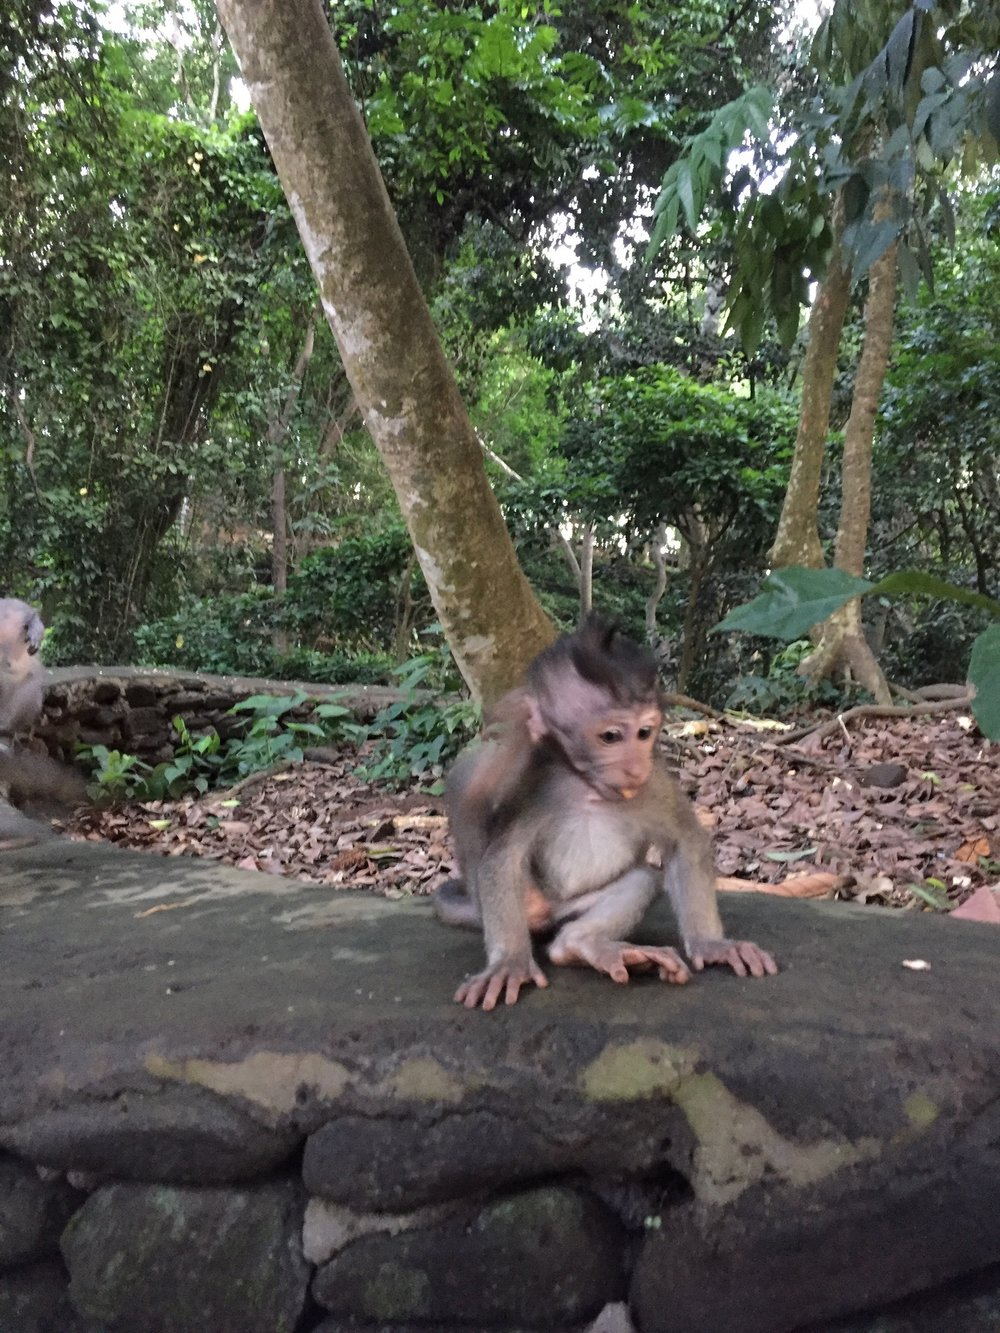 Baby monkey at the Monkey Forest in Ubud, Bali.